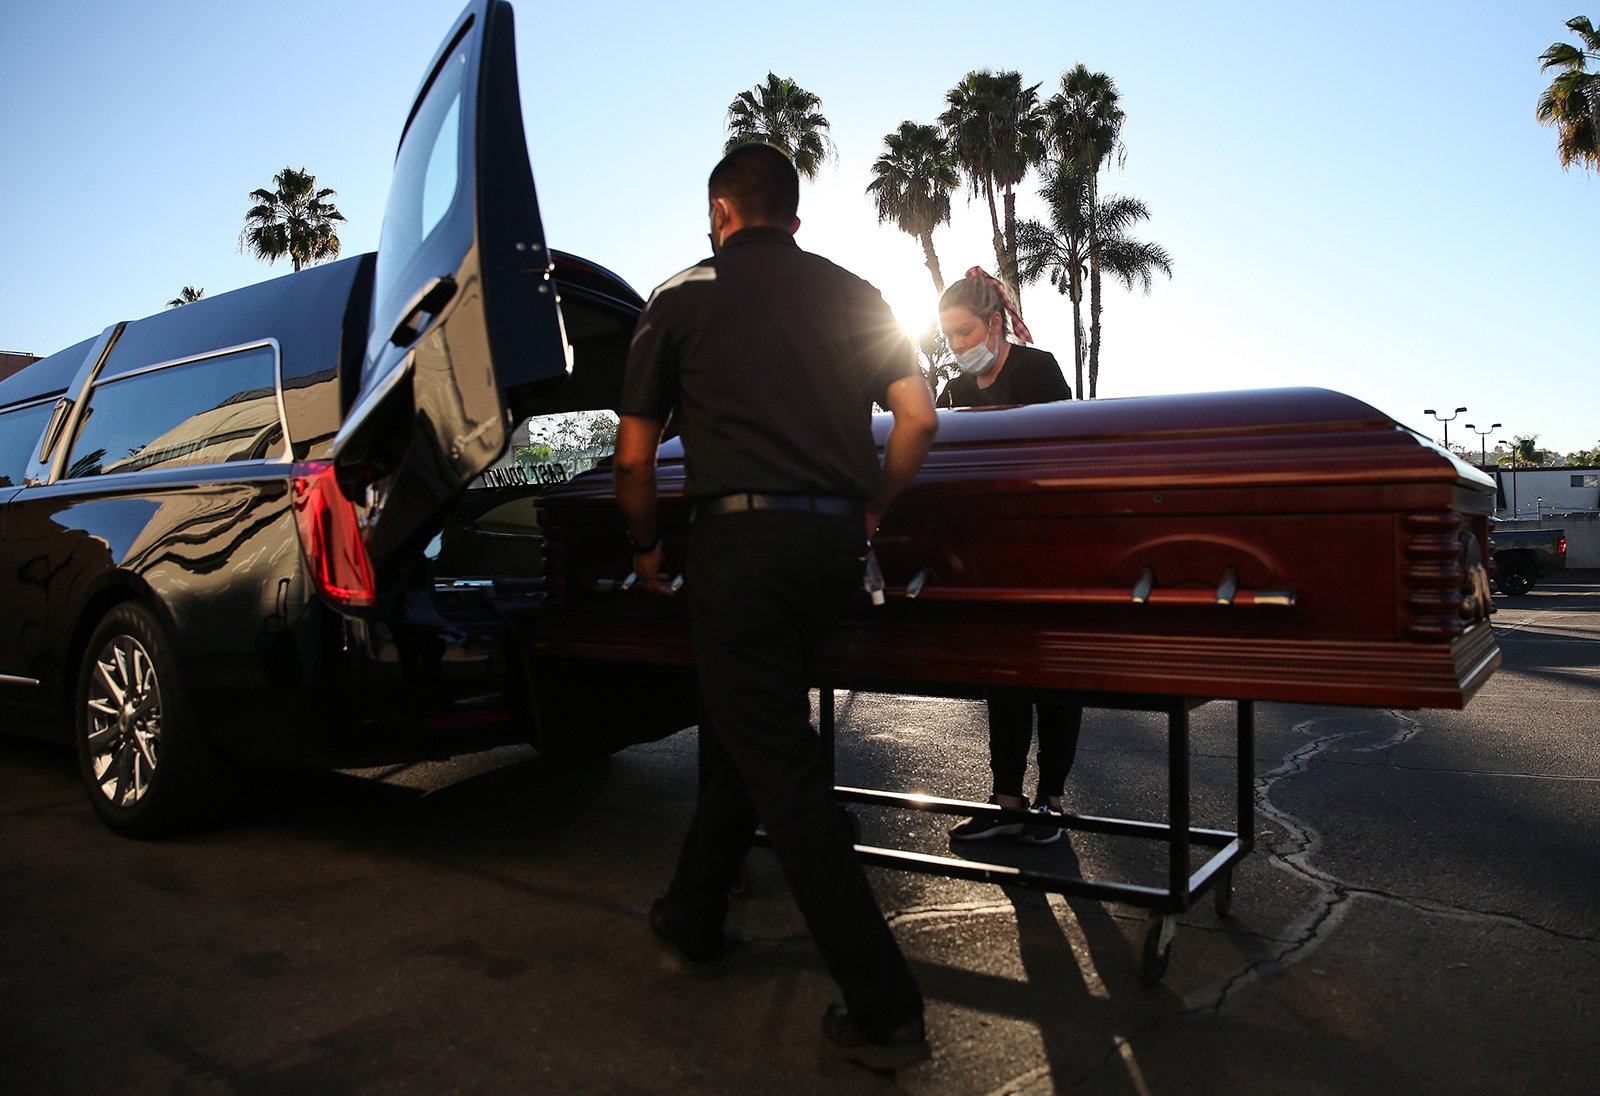 The casket of a person who died after contracting Covid-19 is loaded into a hearse in El Cajon, California, on January 15, 2021.